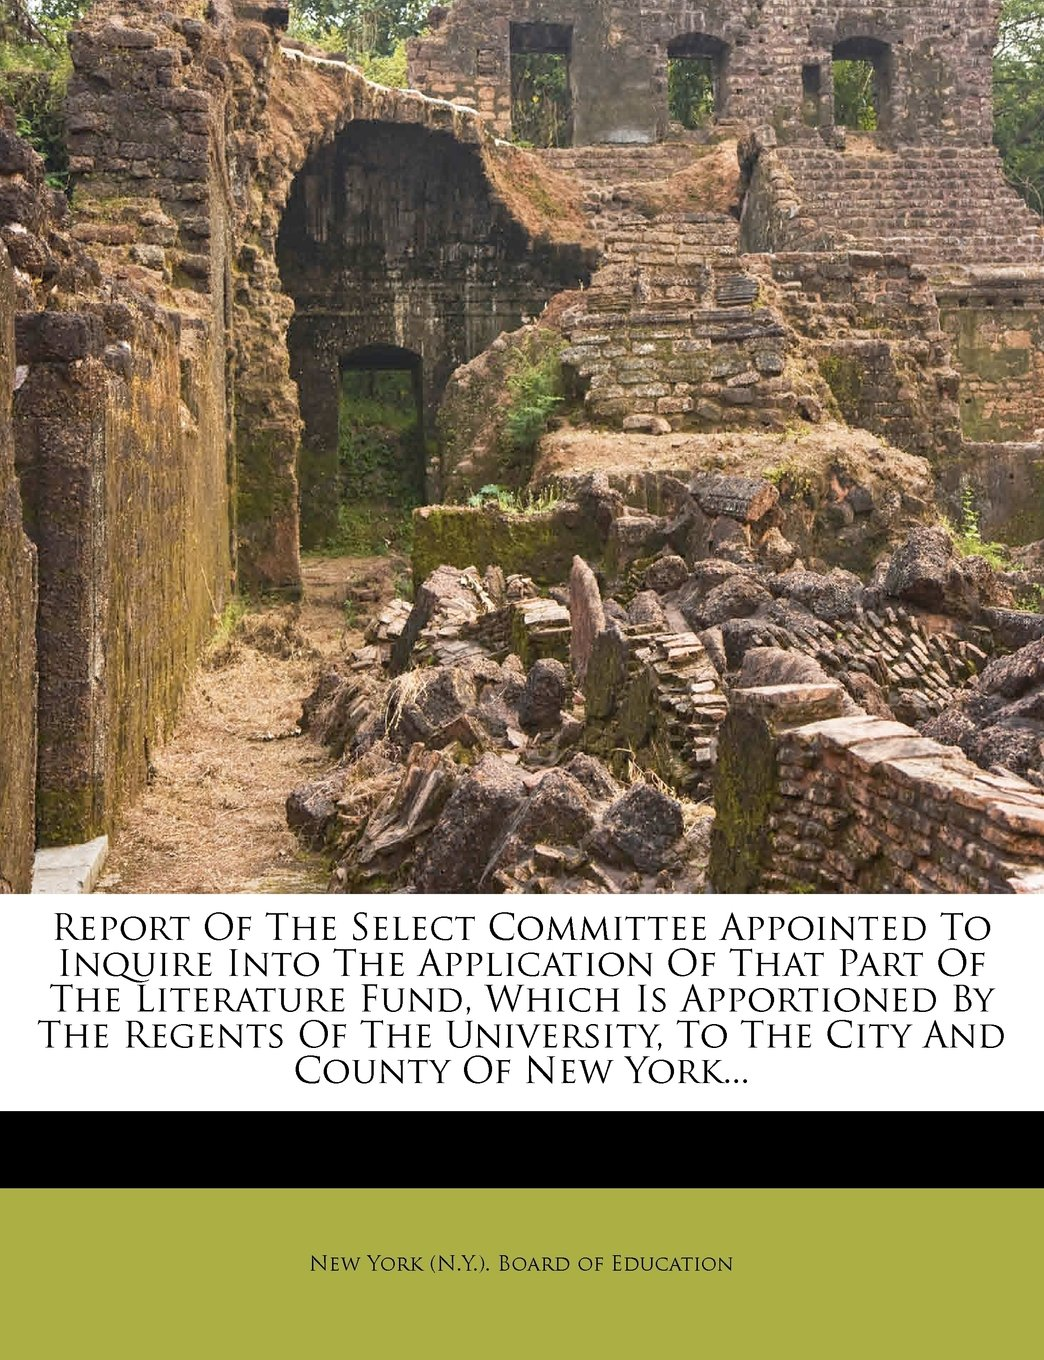 Report Of The Select Committee Appointed To Inquire Into The Application Of That Part Of The Literature Fund, Which Is Apportioned By The Regents Of ... To The City And County Of New York... ebook